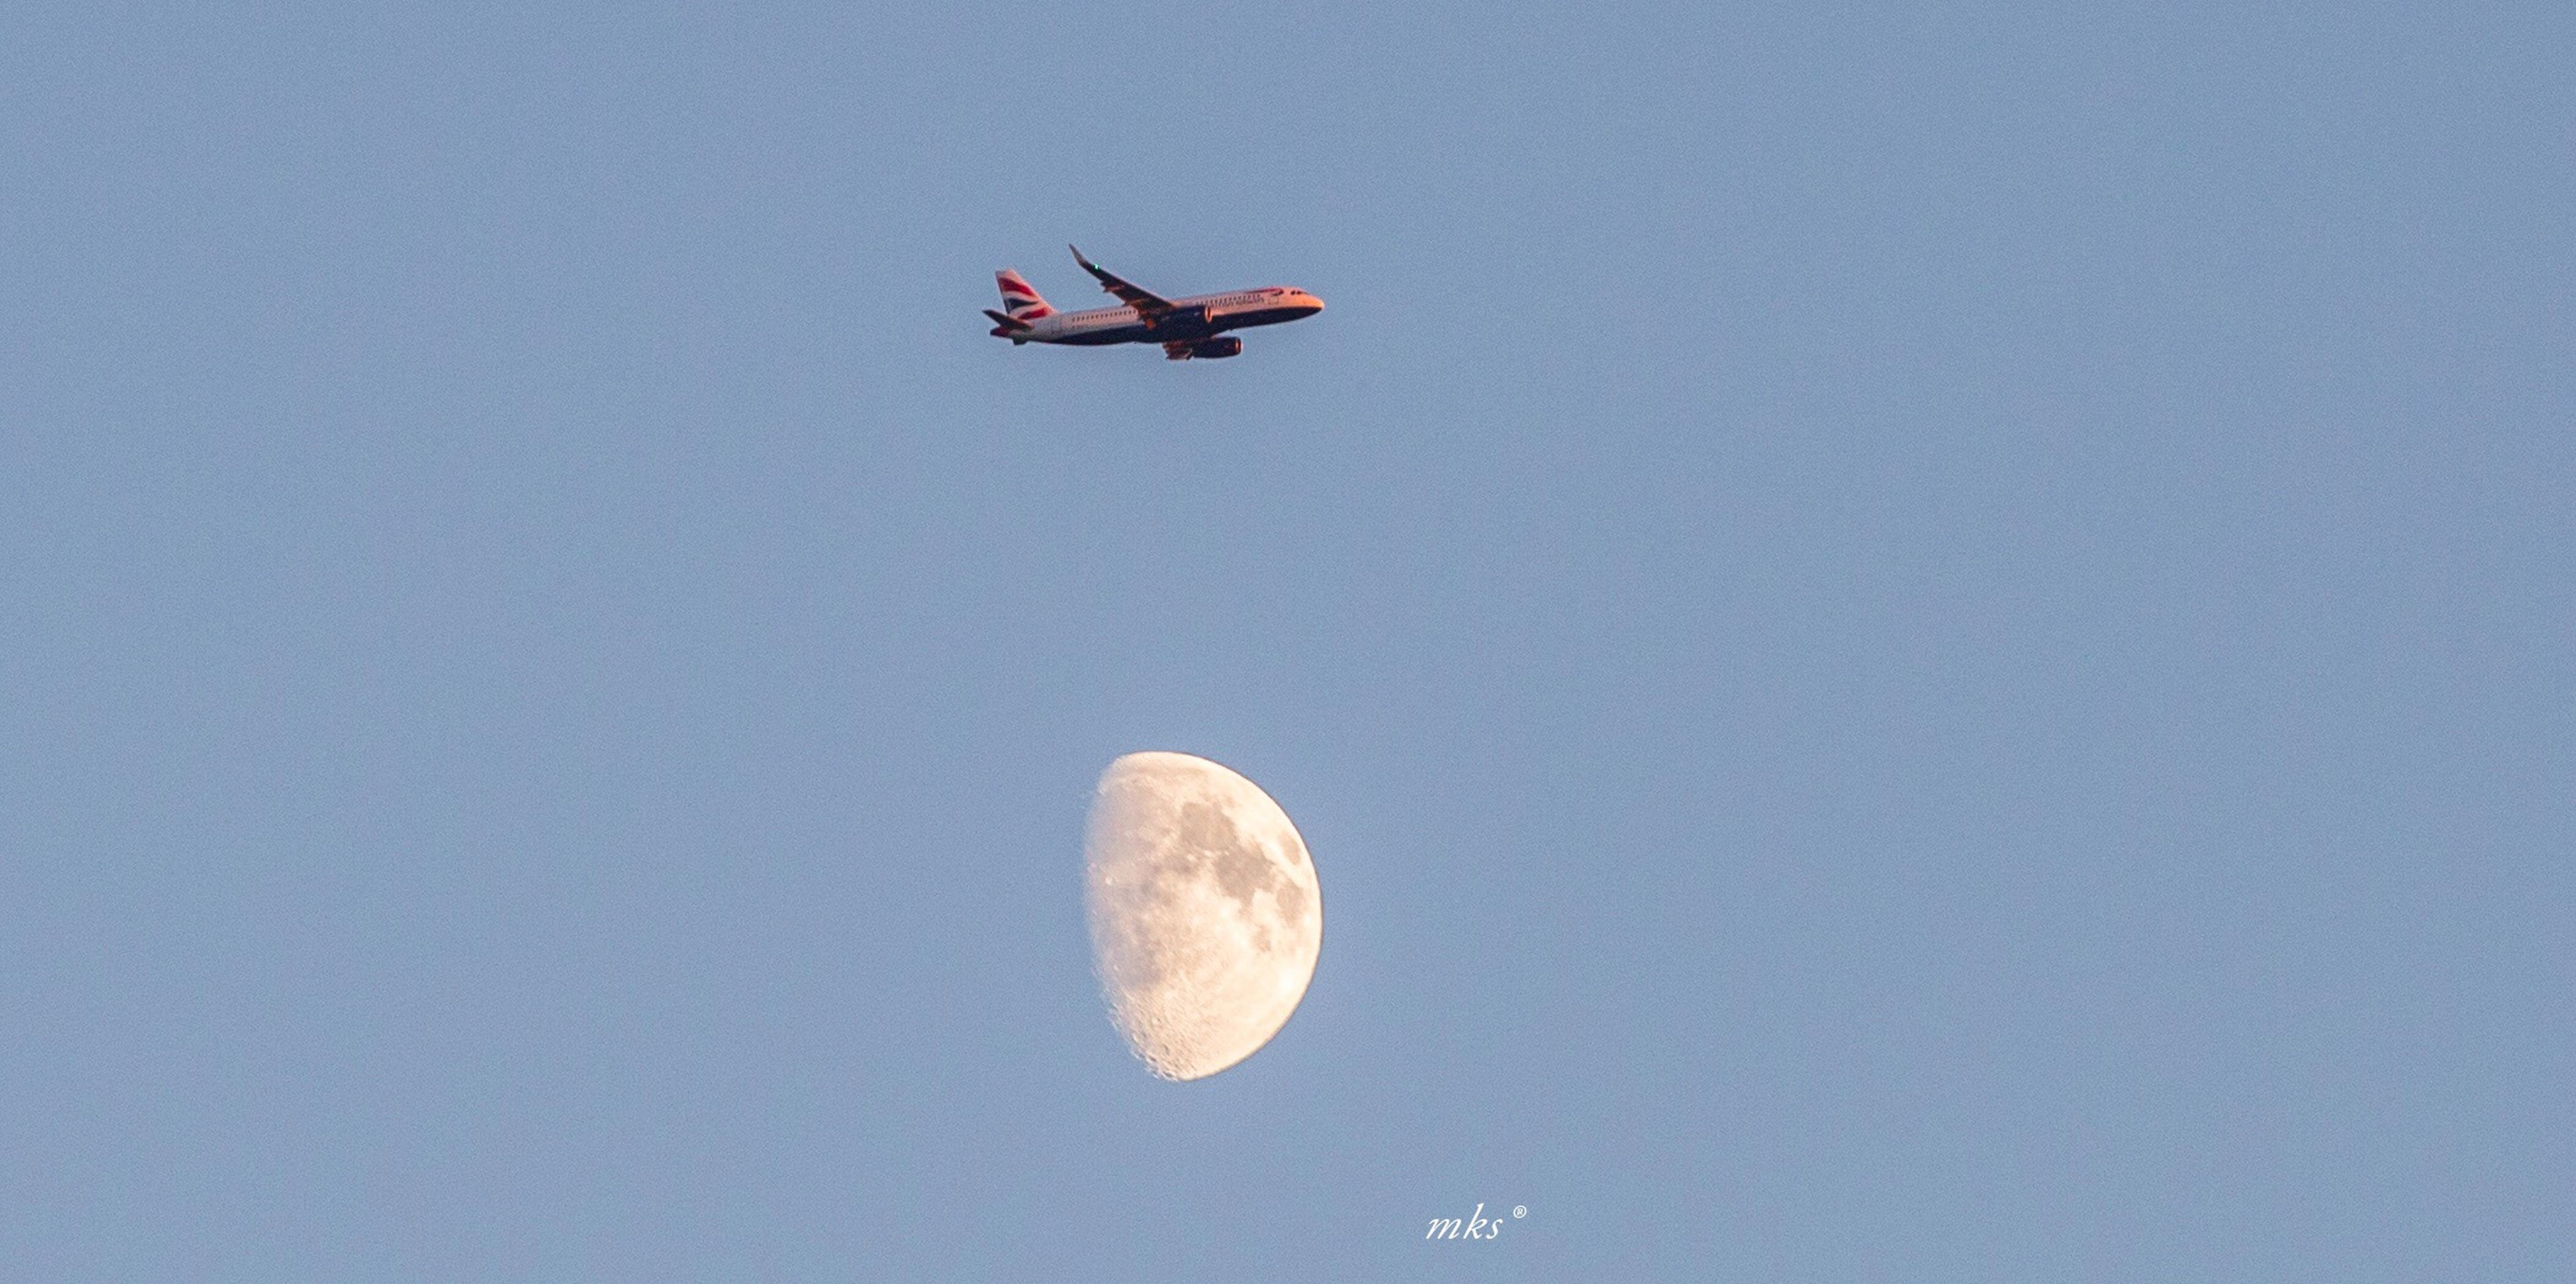 low angle view, transportation, moon, mode of transport, flying, airplane, clear sky, scenics, blue, copy space, air vehicle, tranquility, tranquil scene, beauty in nature, travel, journey, nature, sky, majestic, mid-air, vapor trail, exploration, day, outdoors, space exploration, no people, heaven, dreamlike, vibrant color, romantic sky